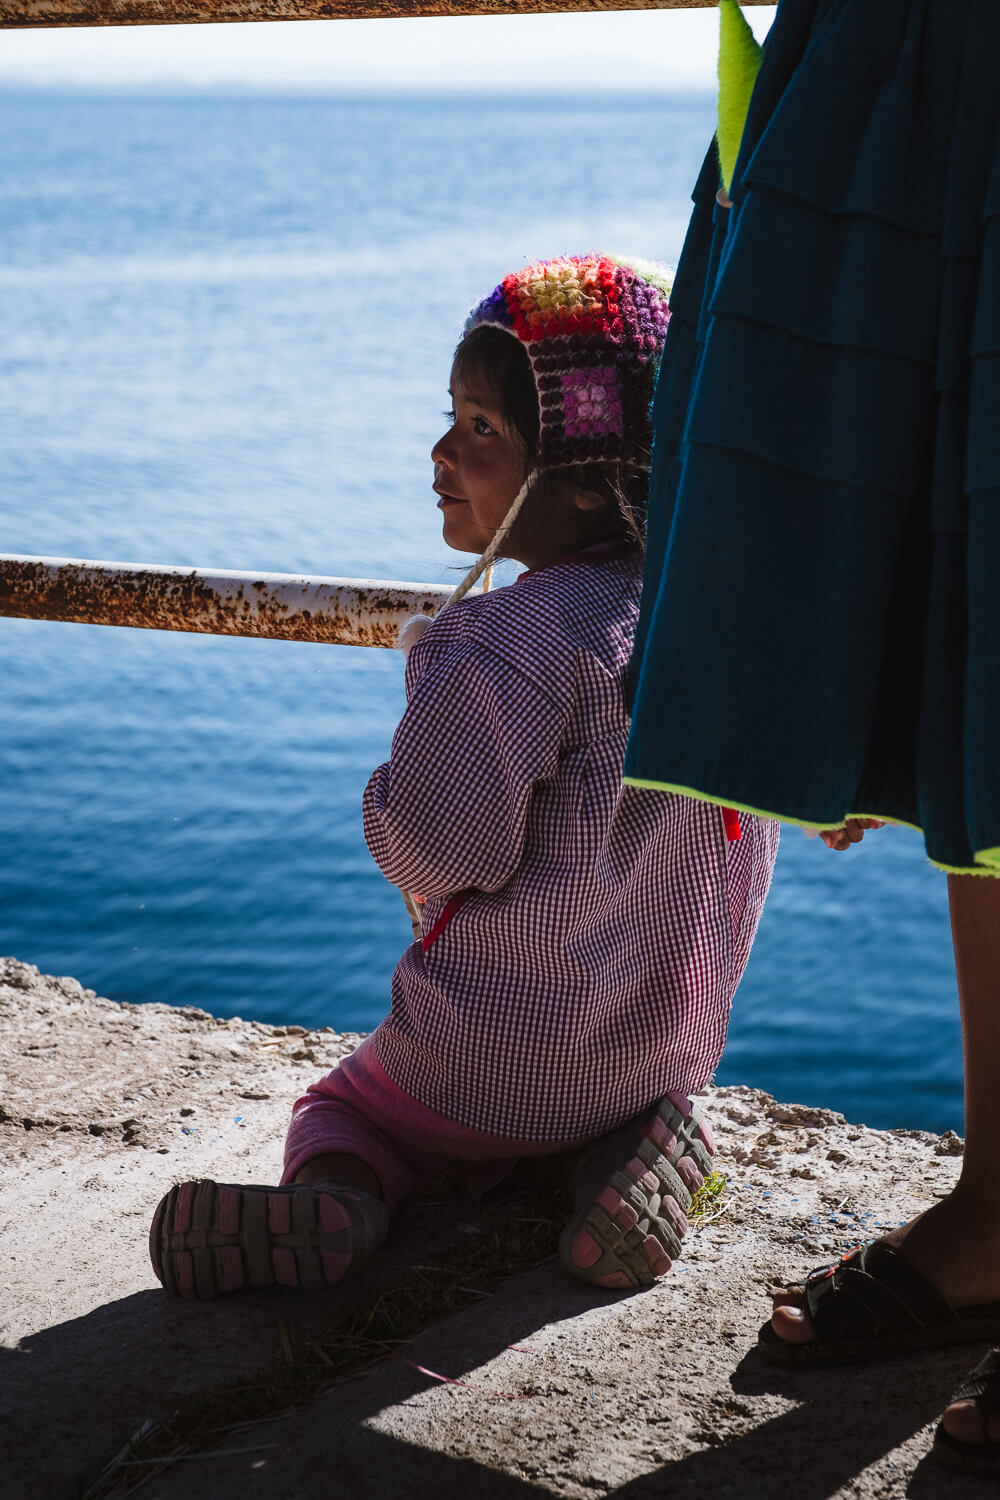 """A little girl from a homestay family, Amantani Island. Travel photography and guide by © Natasha Lequepeys for """"And Then I Met Yoko"""". #peru #laketiticaca #homestay #photoblog #travelblog #fujifilm"""